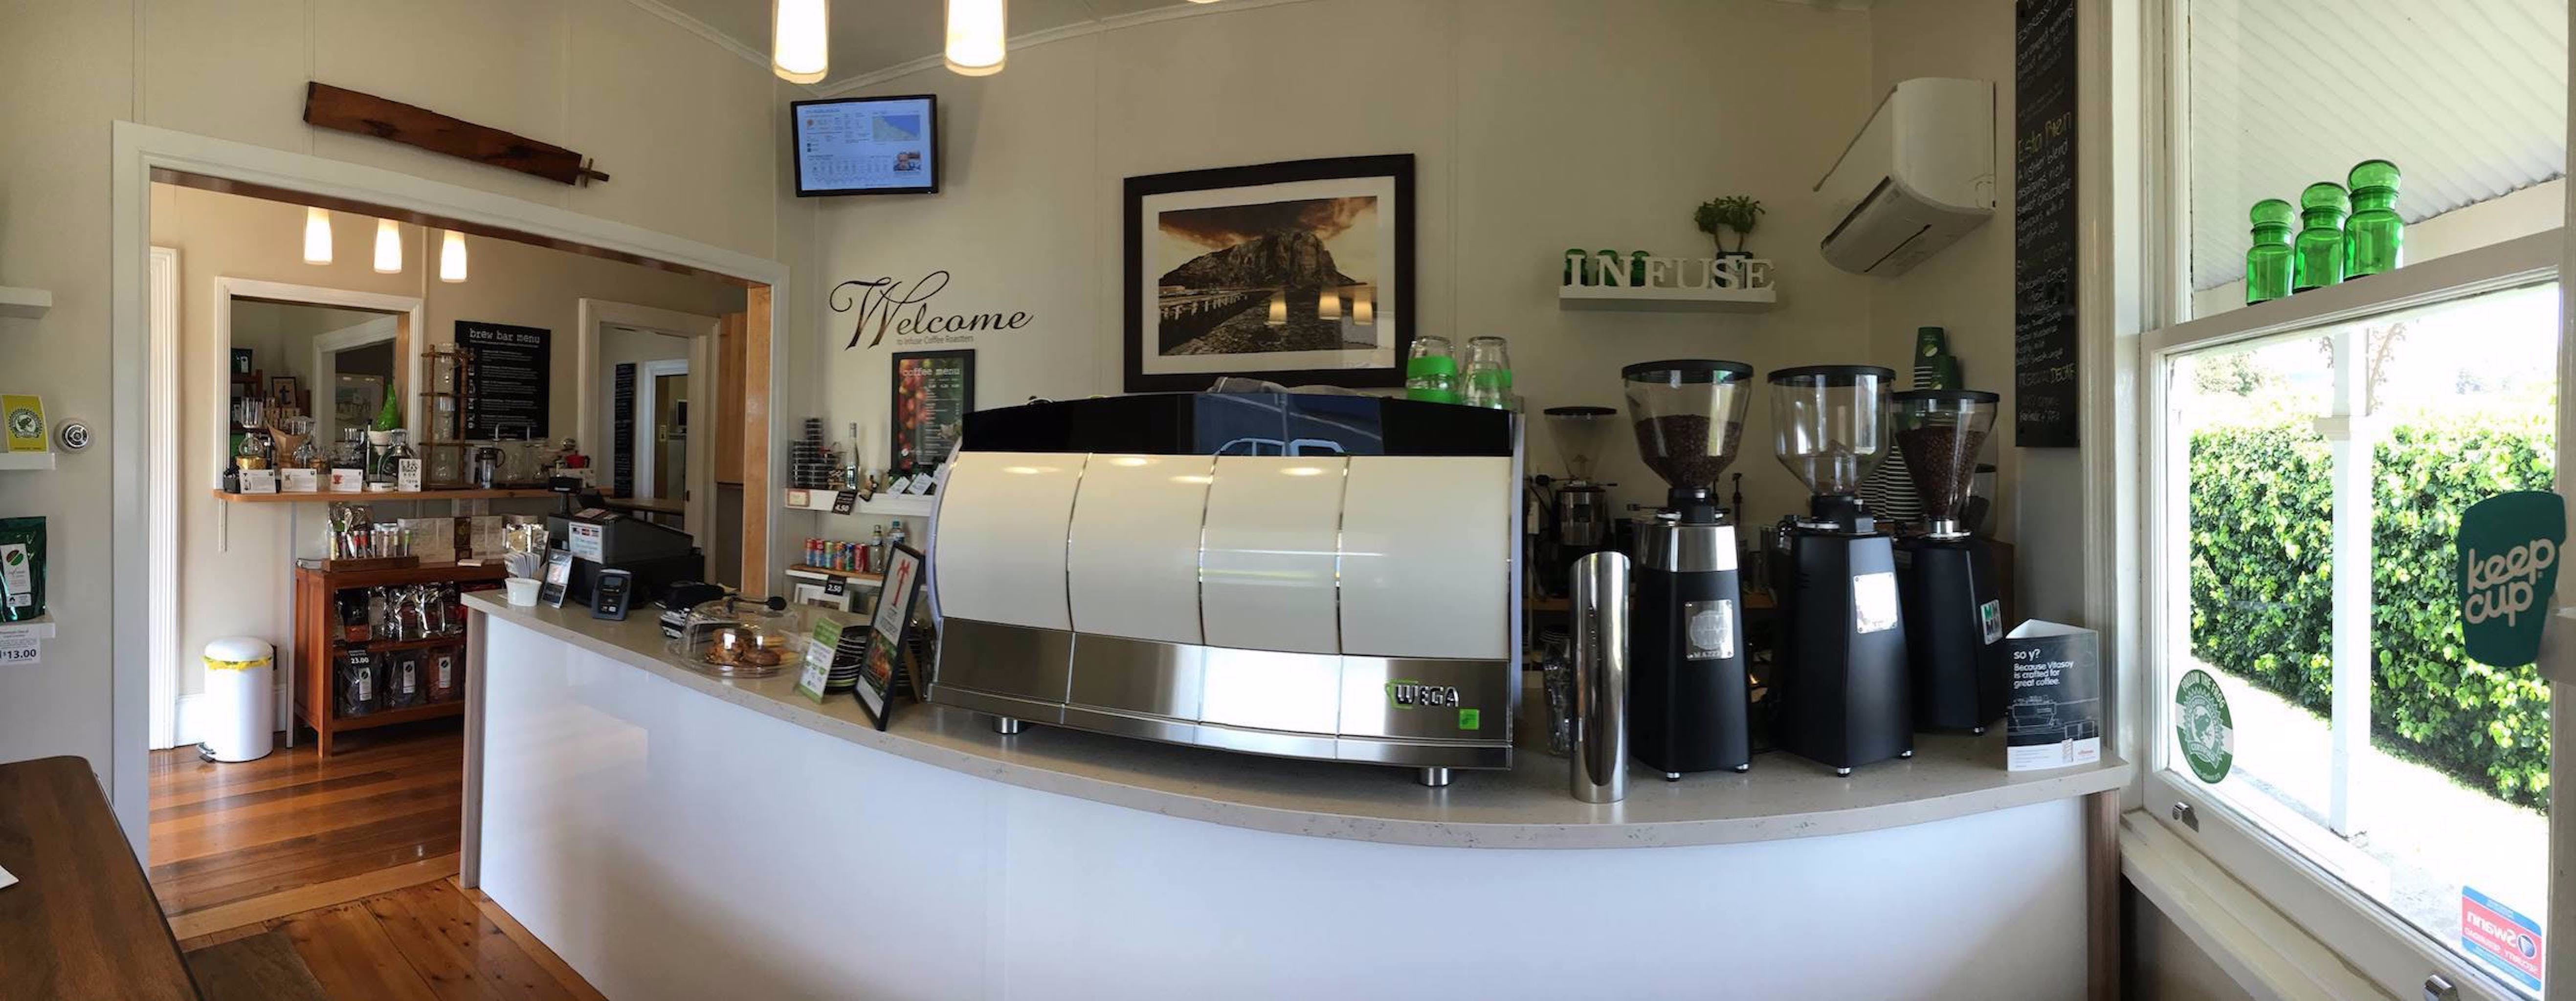 Infuse Coffee Roasters - Geraldton Accommodation